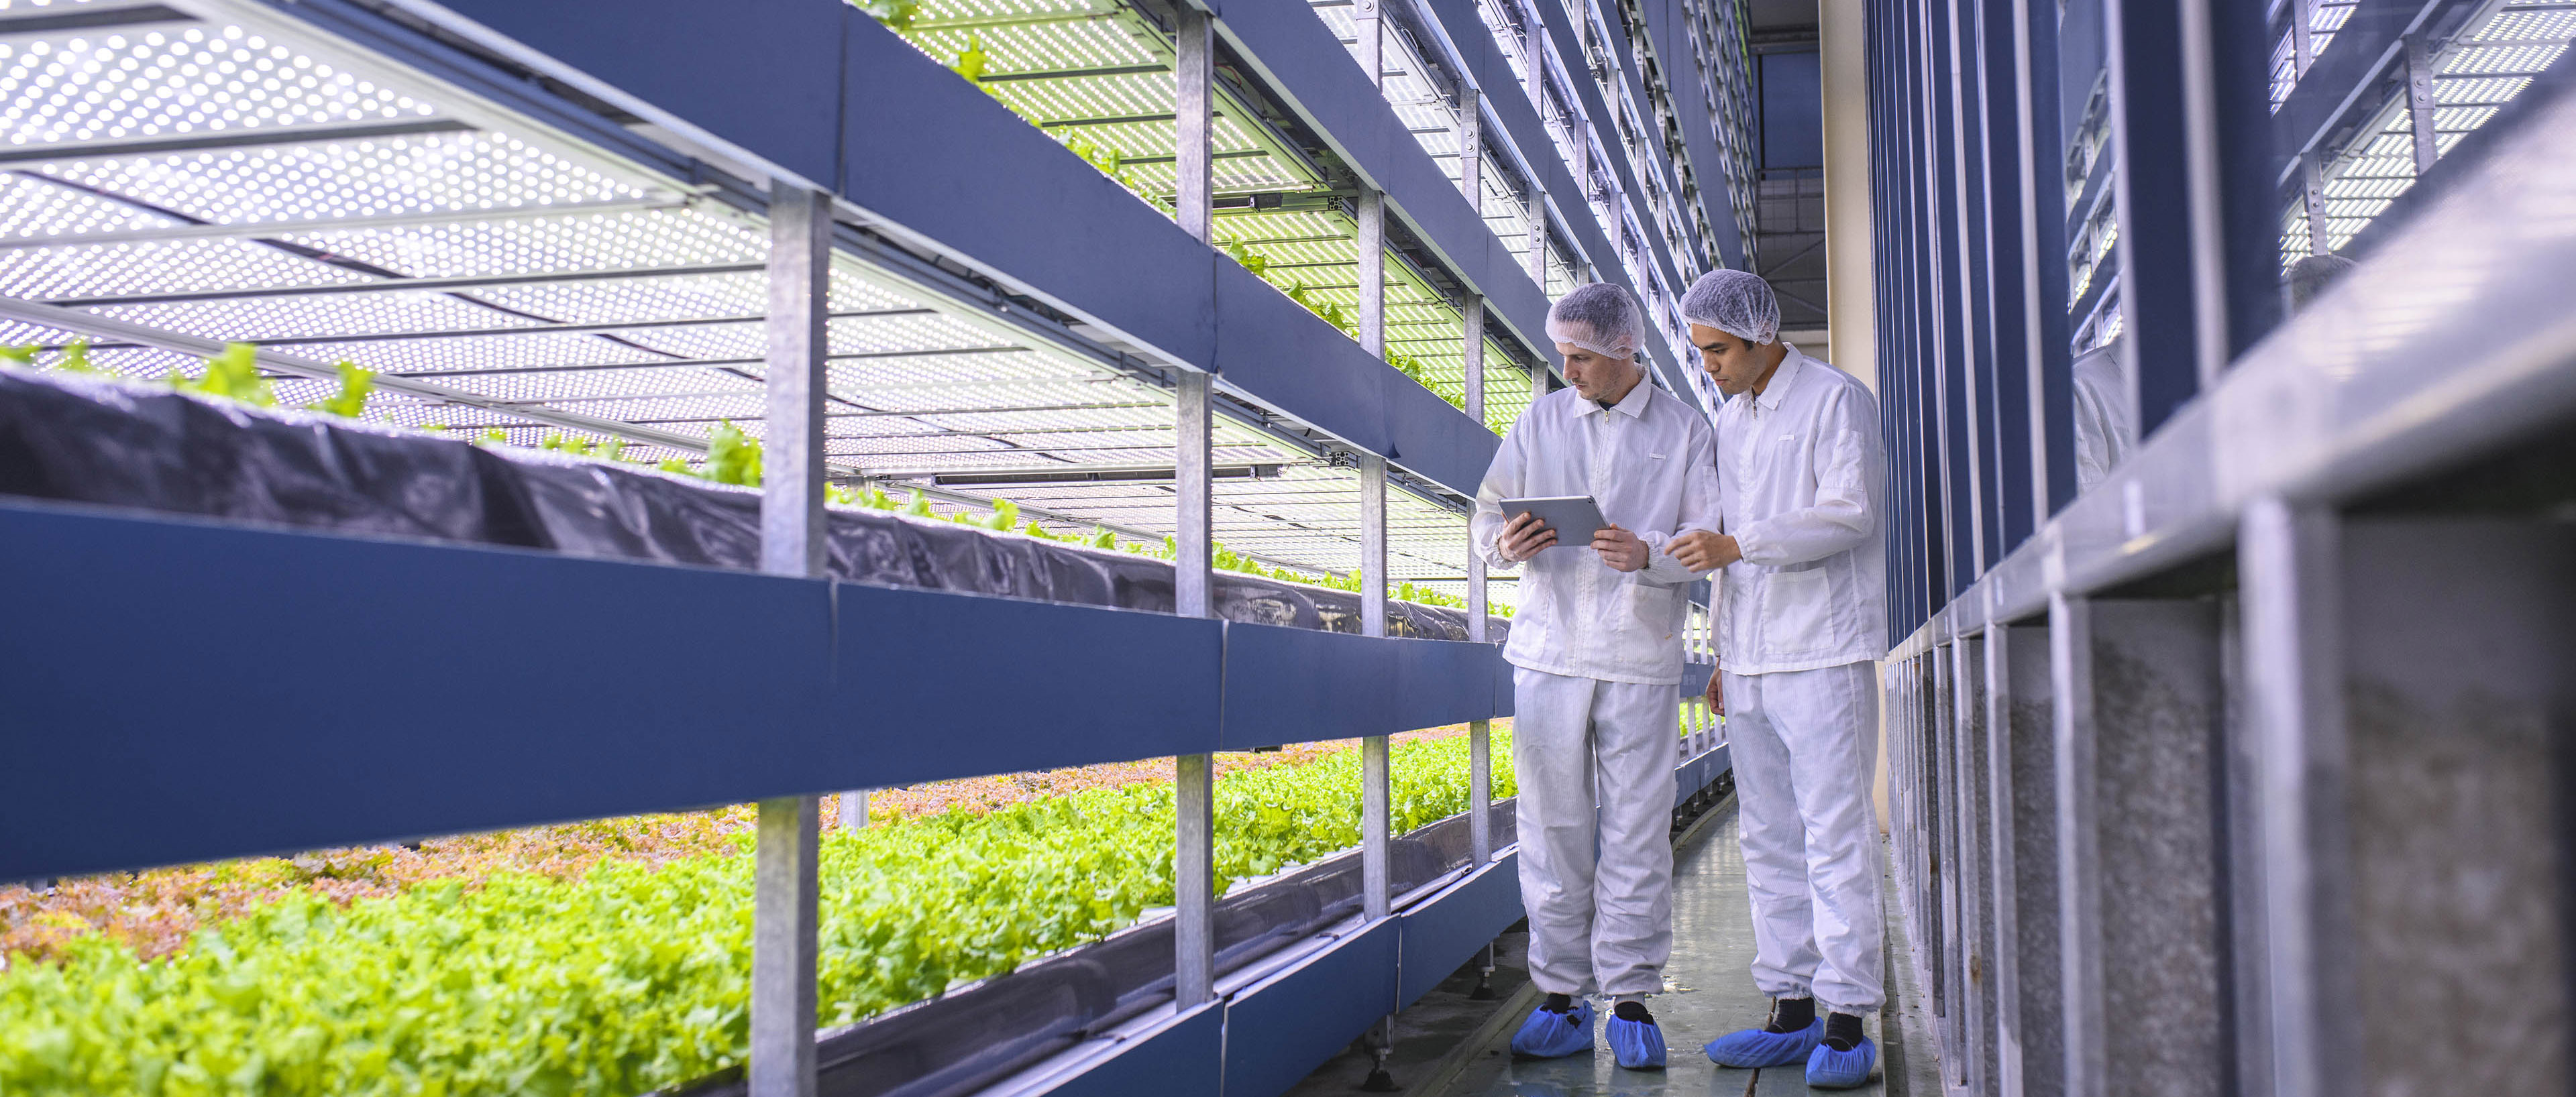 Agri-tech Specialists Examining Stacks of Indoor Crops